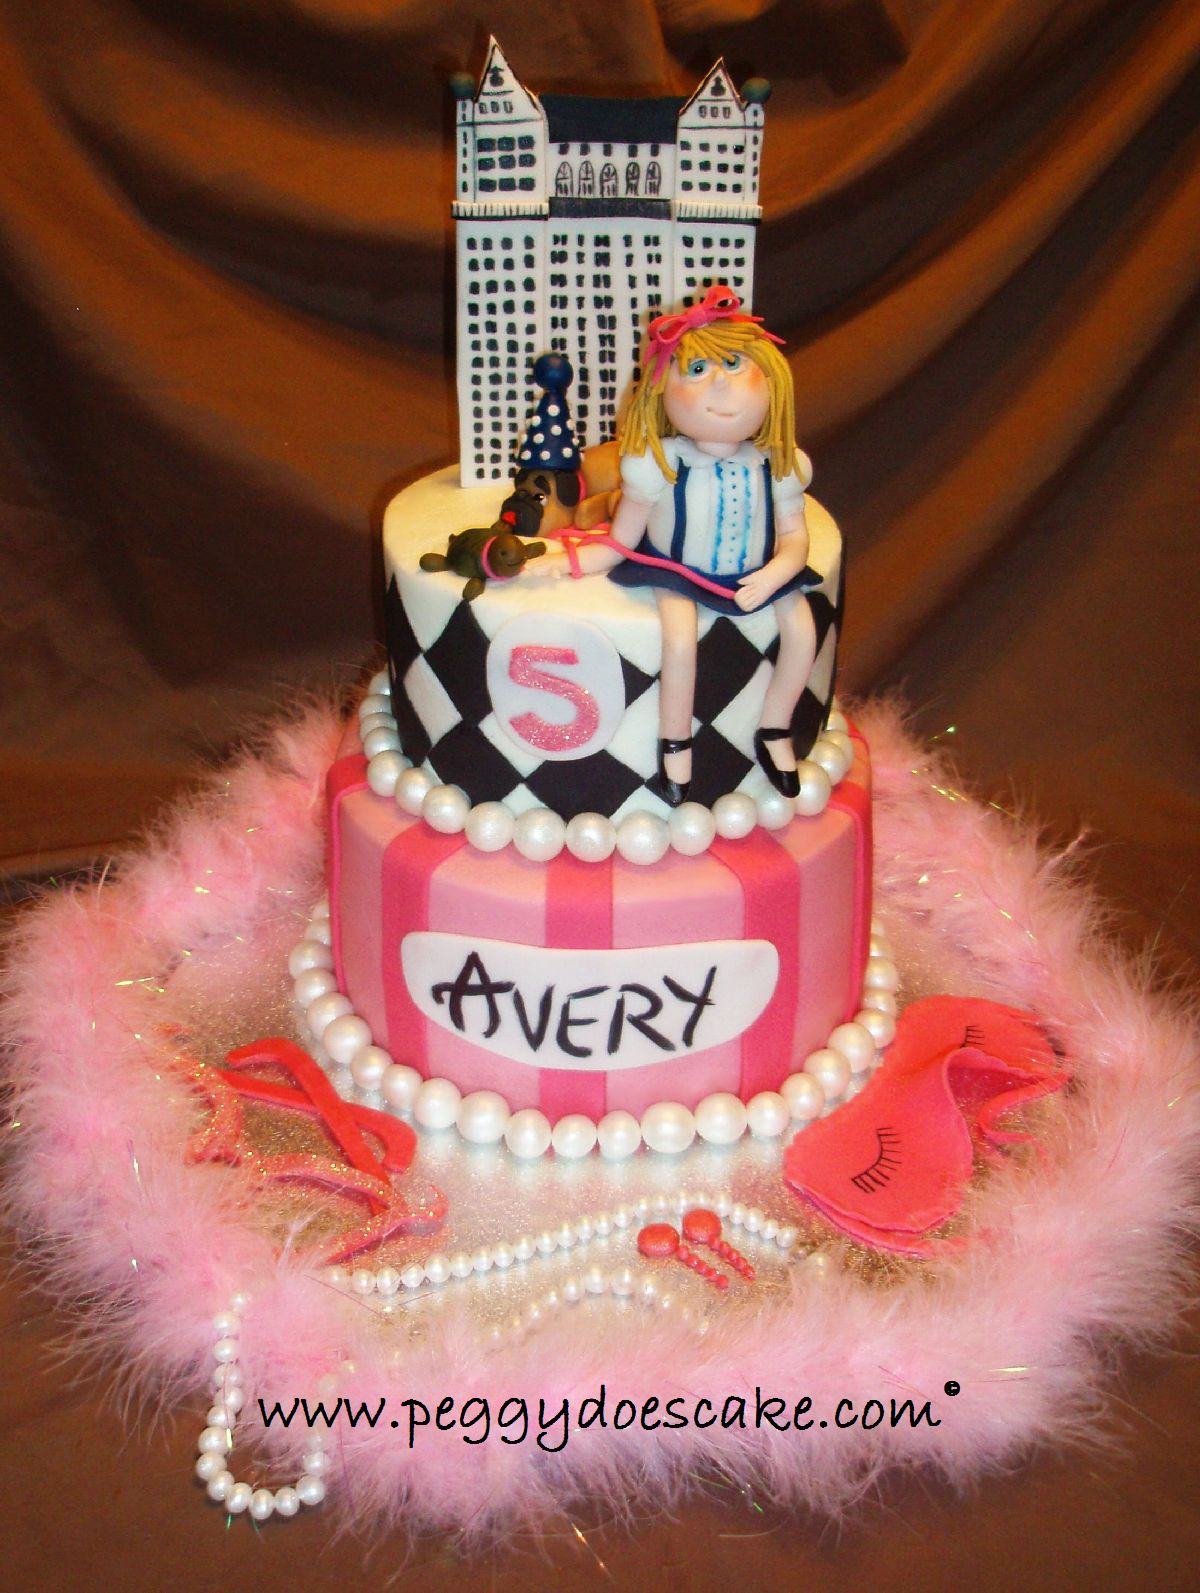 Swell Peggy Does Cake Eloise In The Plaza Birthday Cake Click Photos Personalised Birthday Cards Cominlily Jamesorg